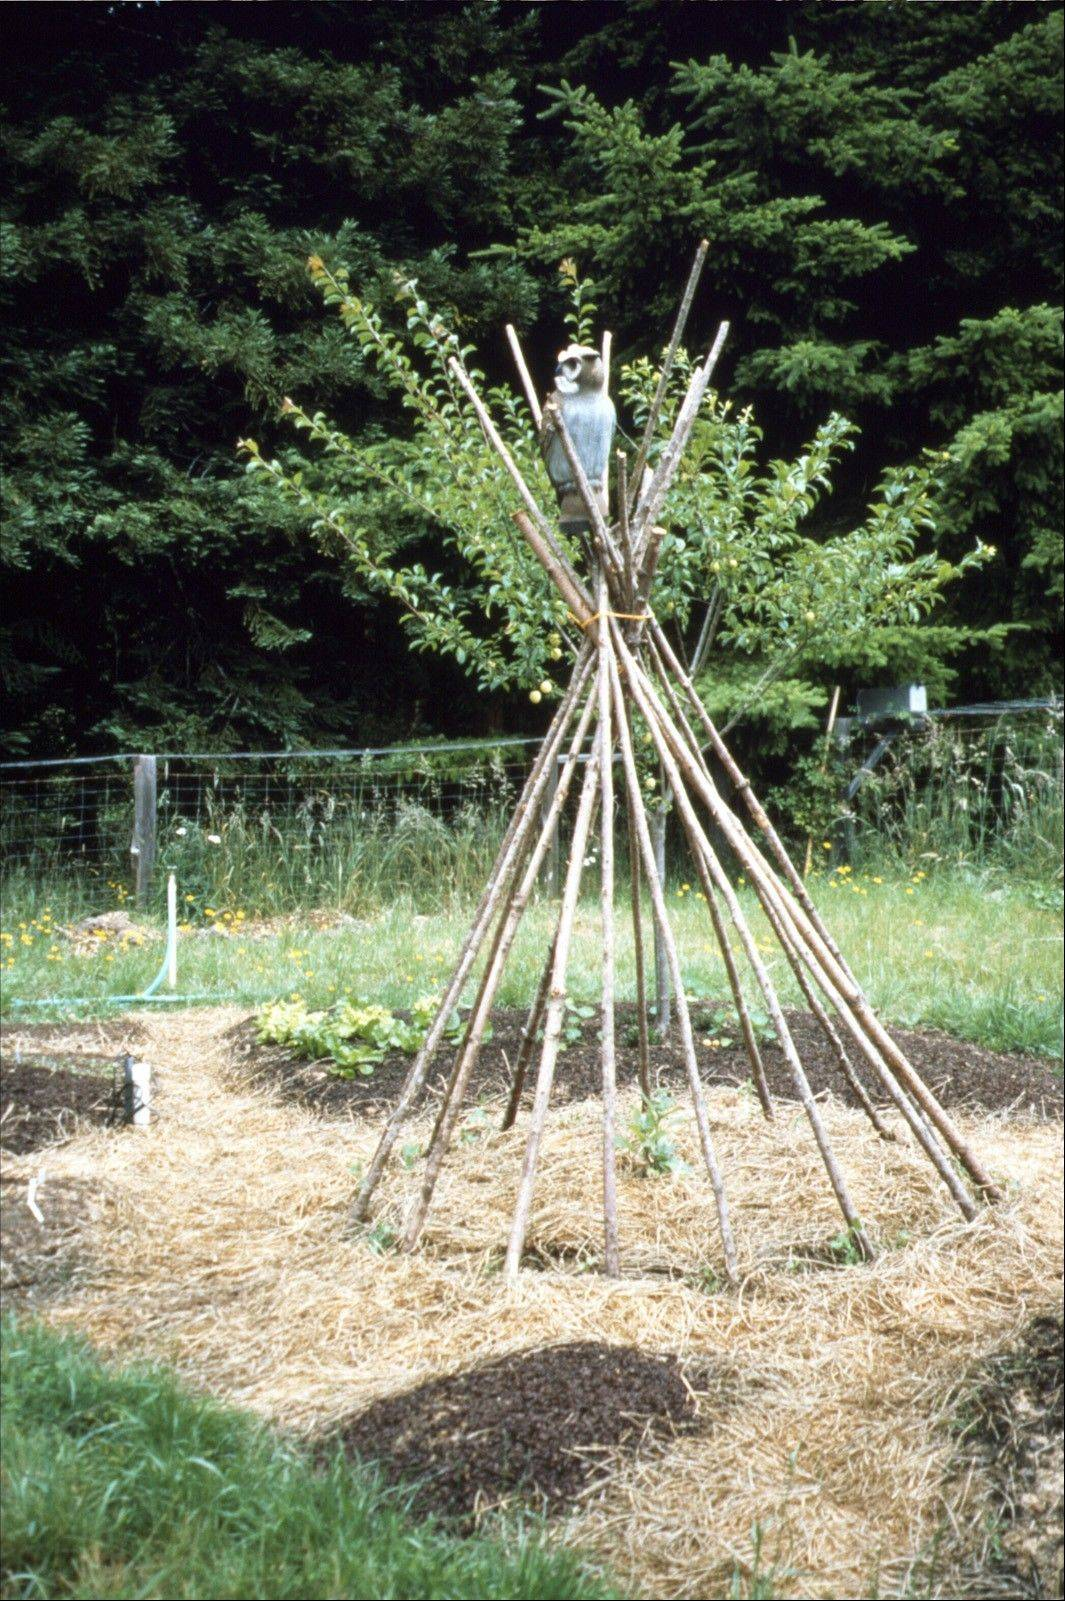 Arrange straw mulch around young seedlings to reduce competition from weeds.